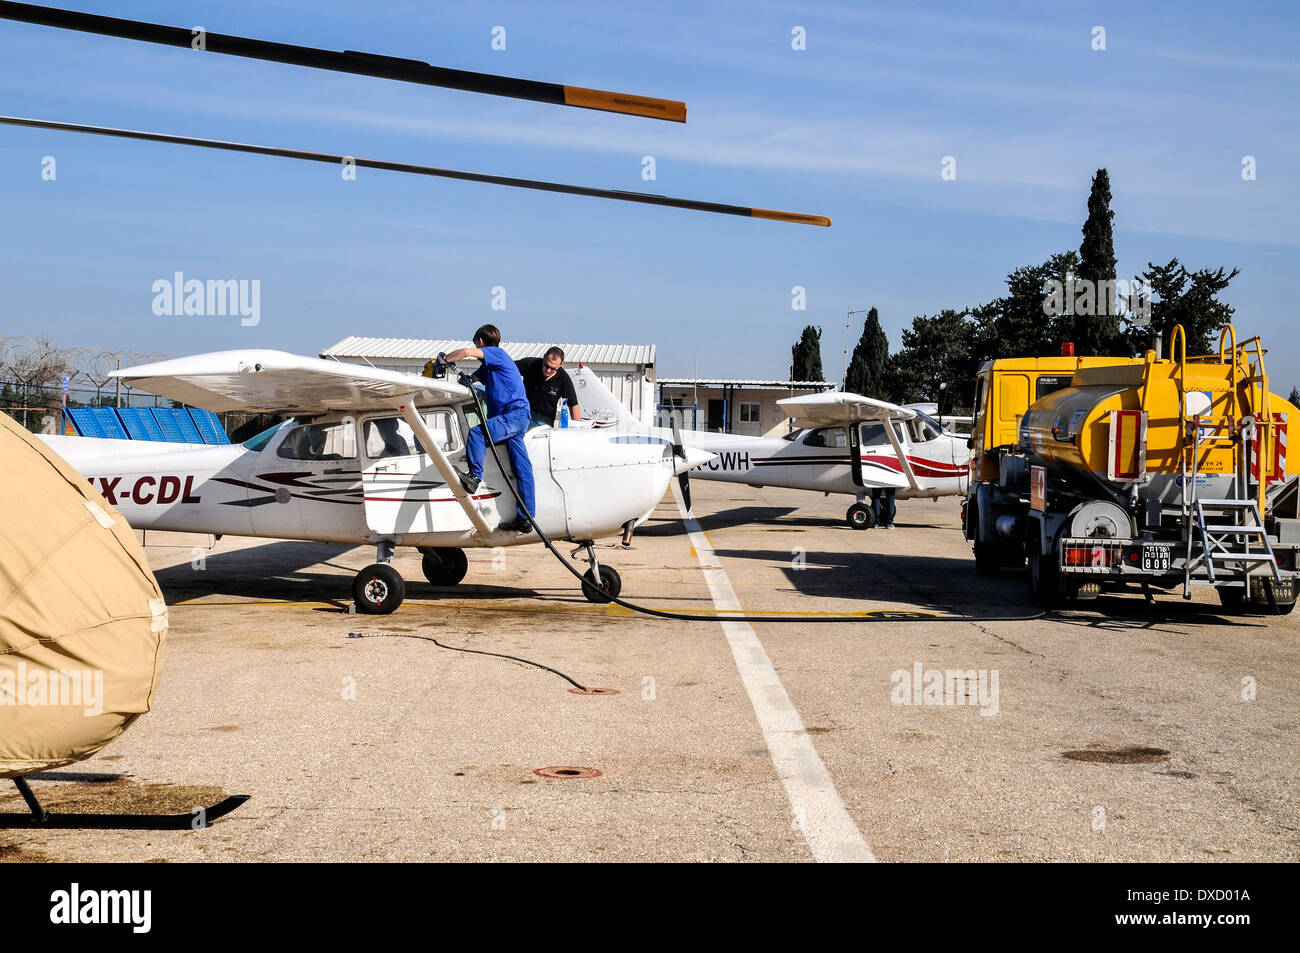 refueling a private airplane at an airstrip - Stock Image